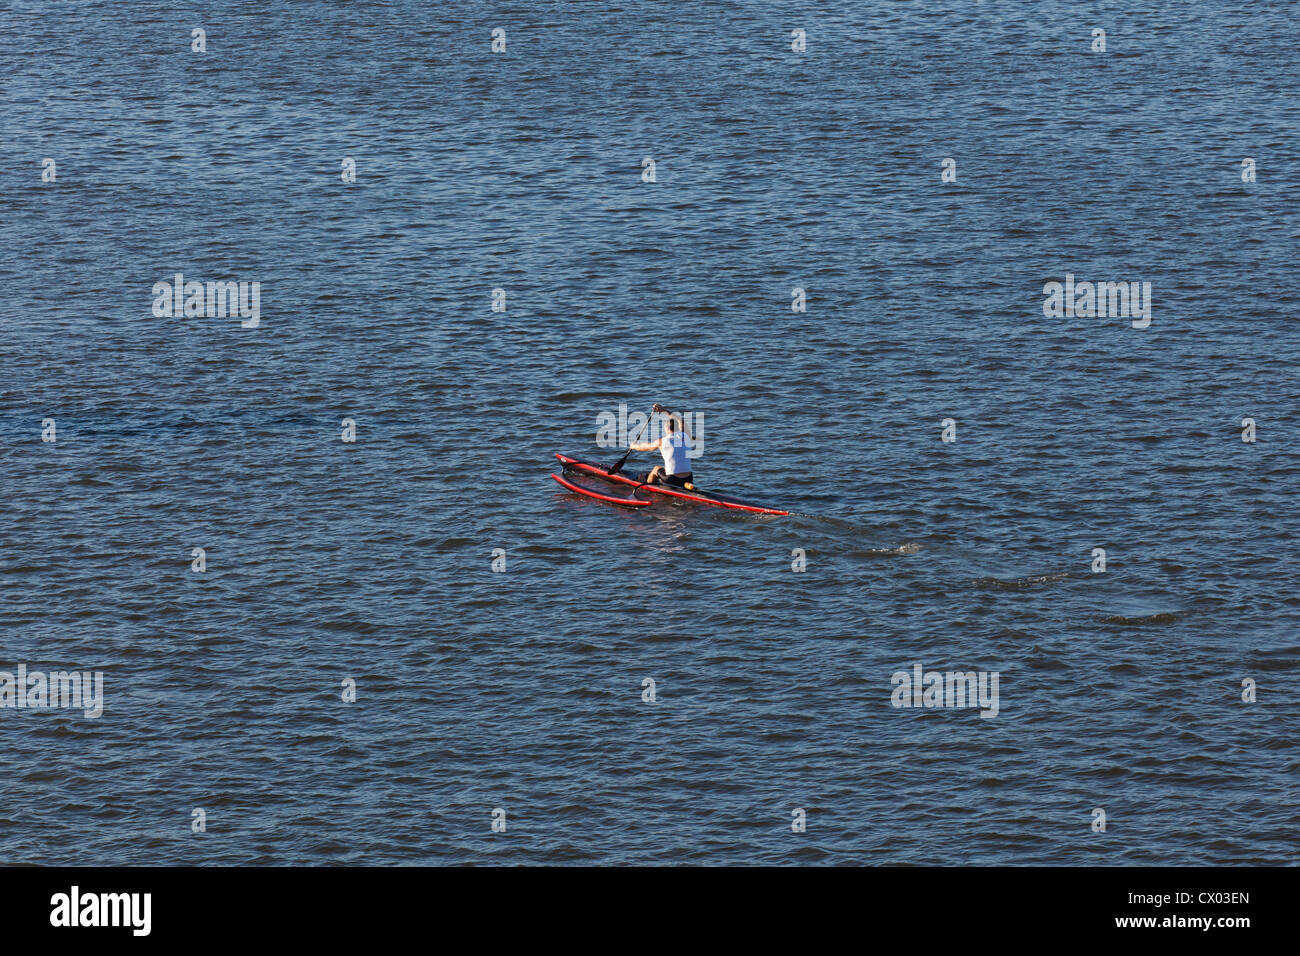 Man on composite kayak with stabilizer - Stock Image